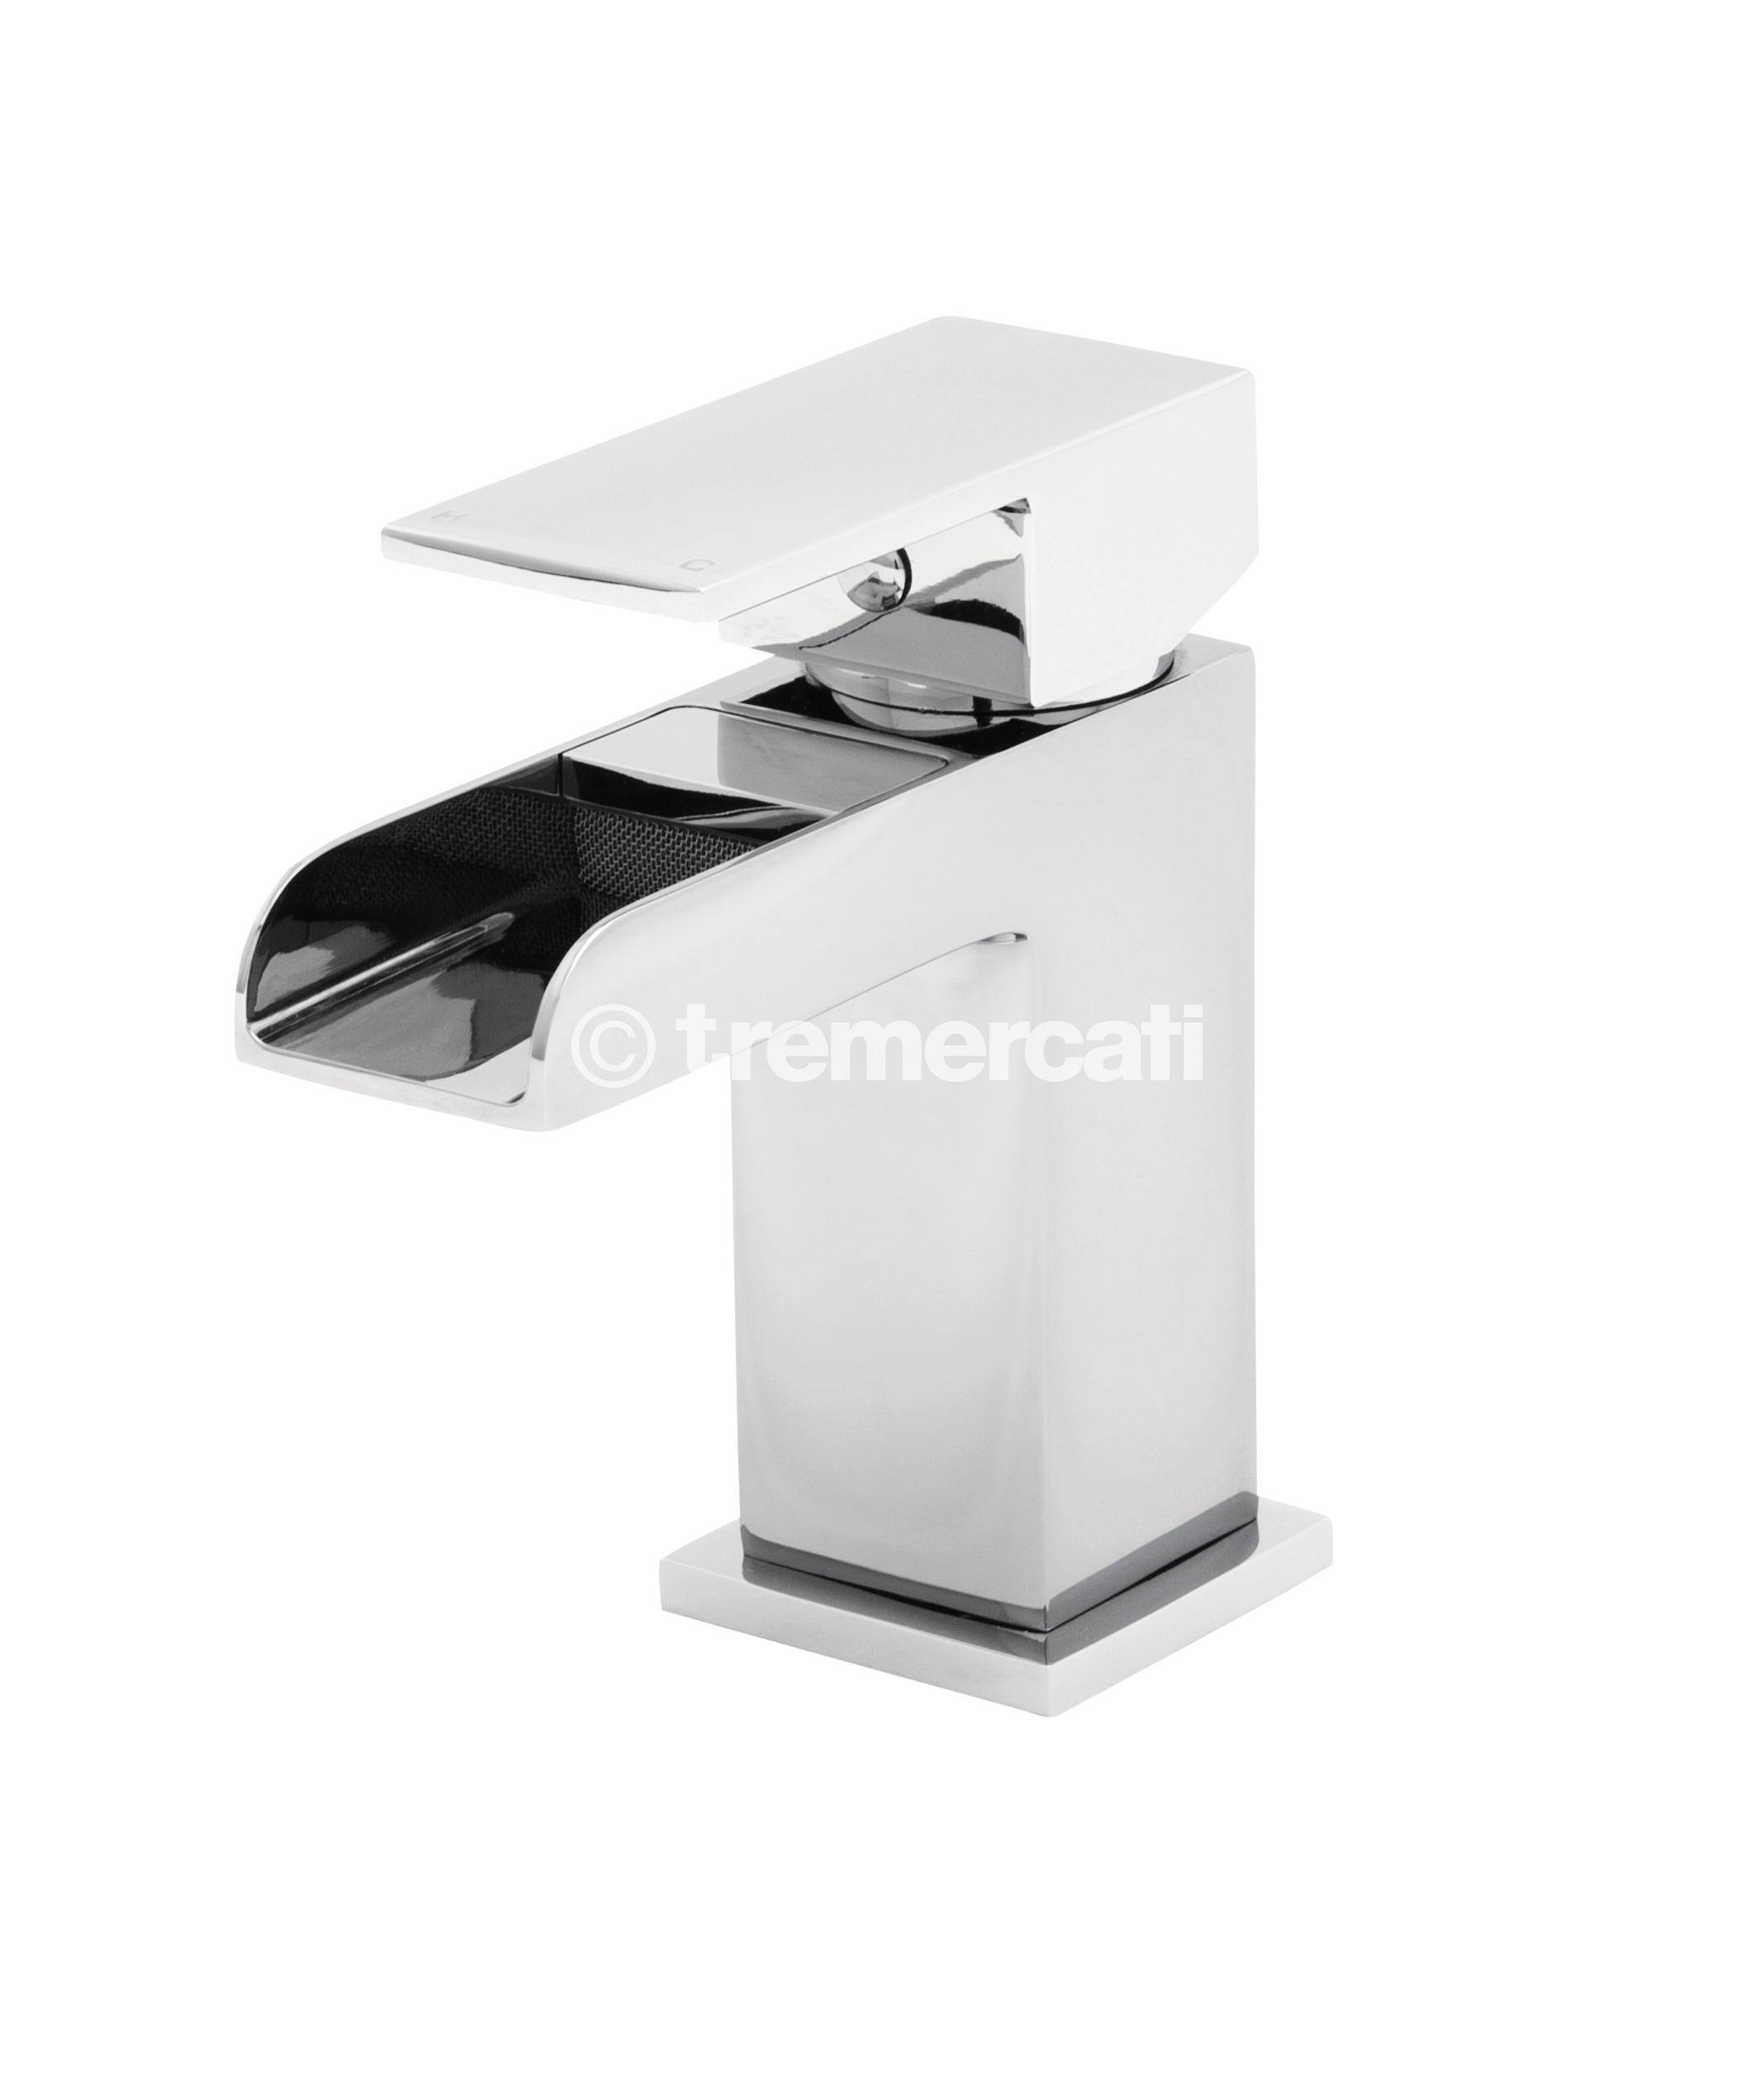 TRE MERCATI GEYSIR MONO BASIN MIXER WITH CLICK CLACK WASTE CHROME PLATED